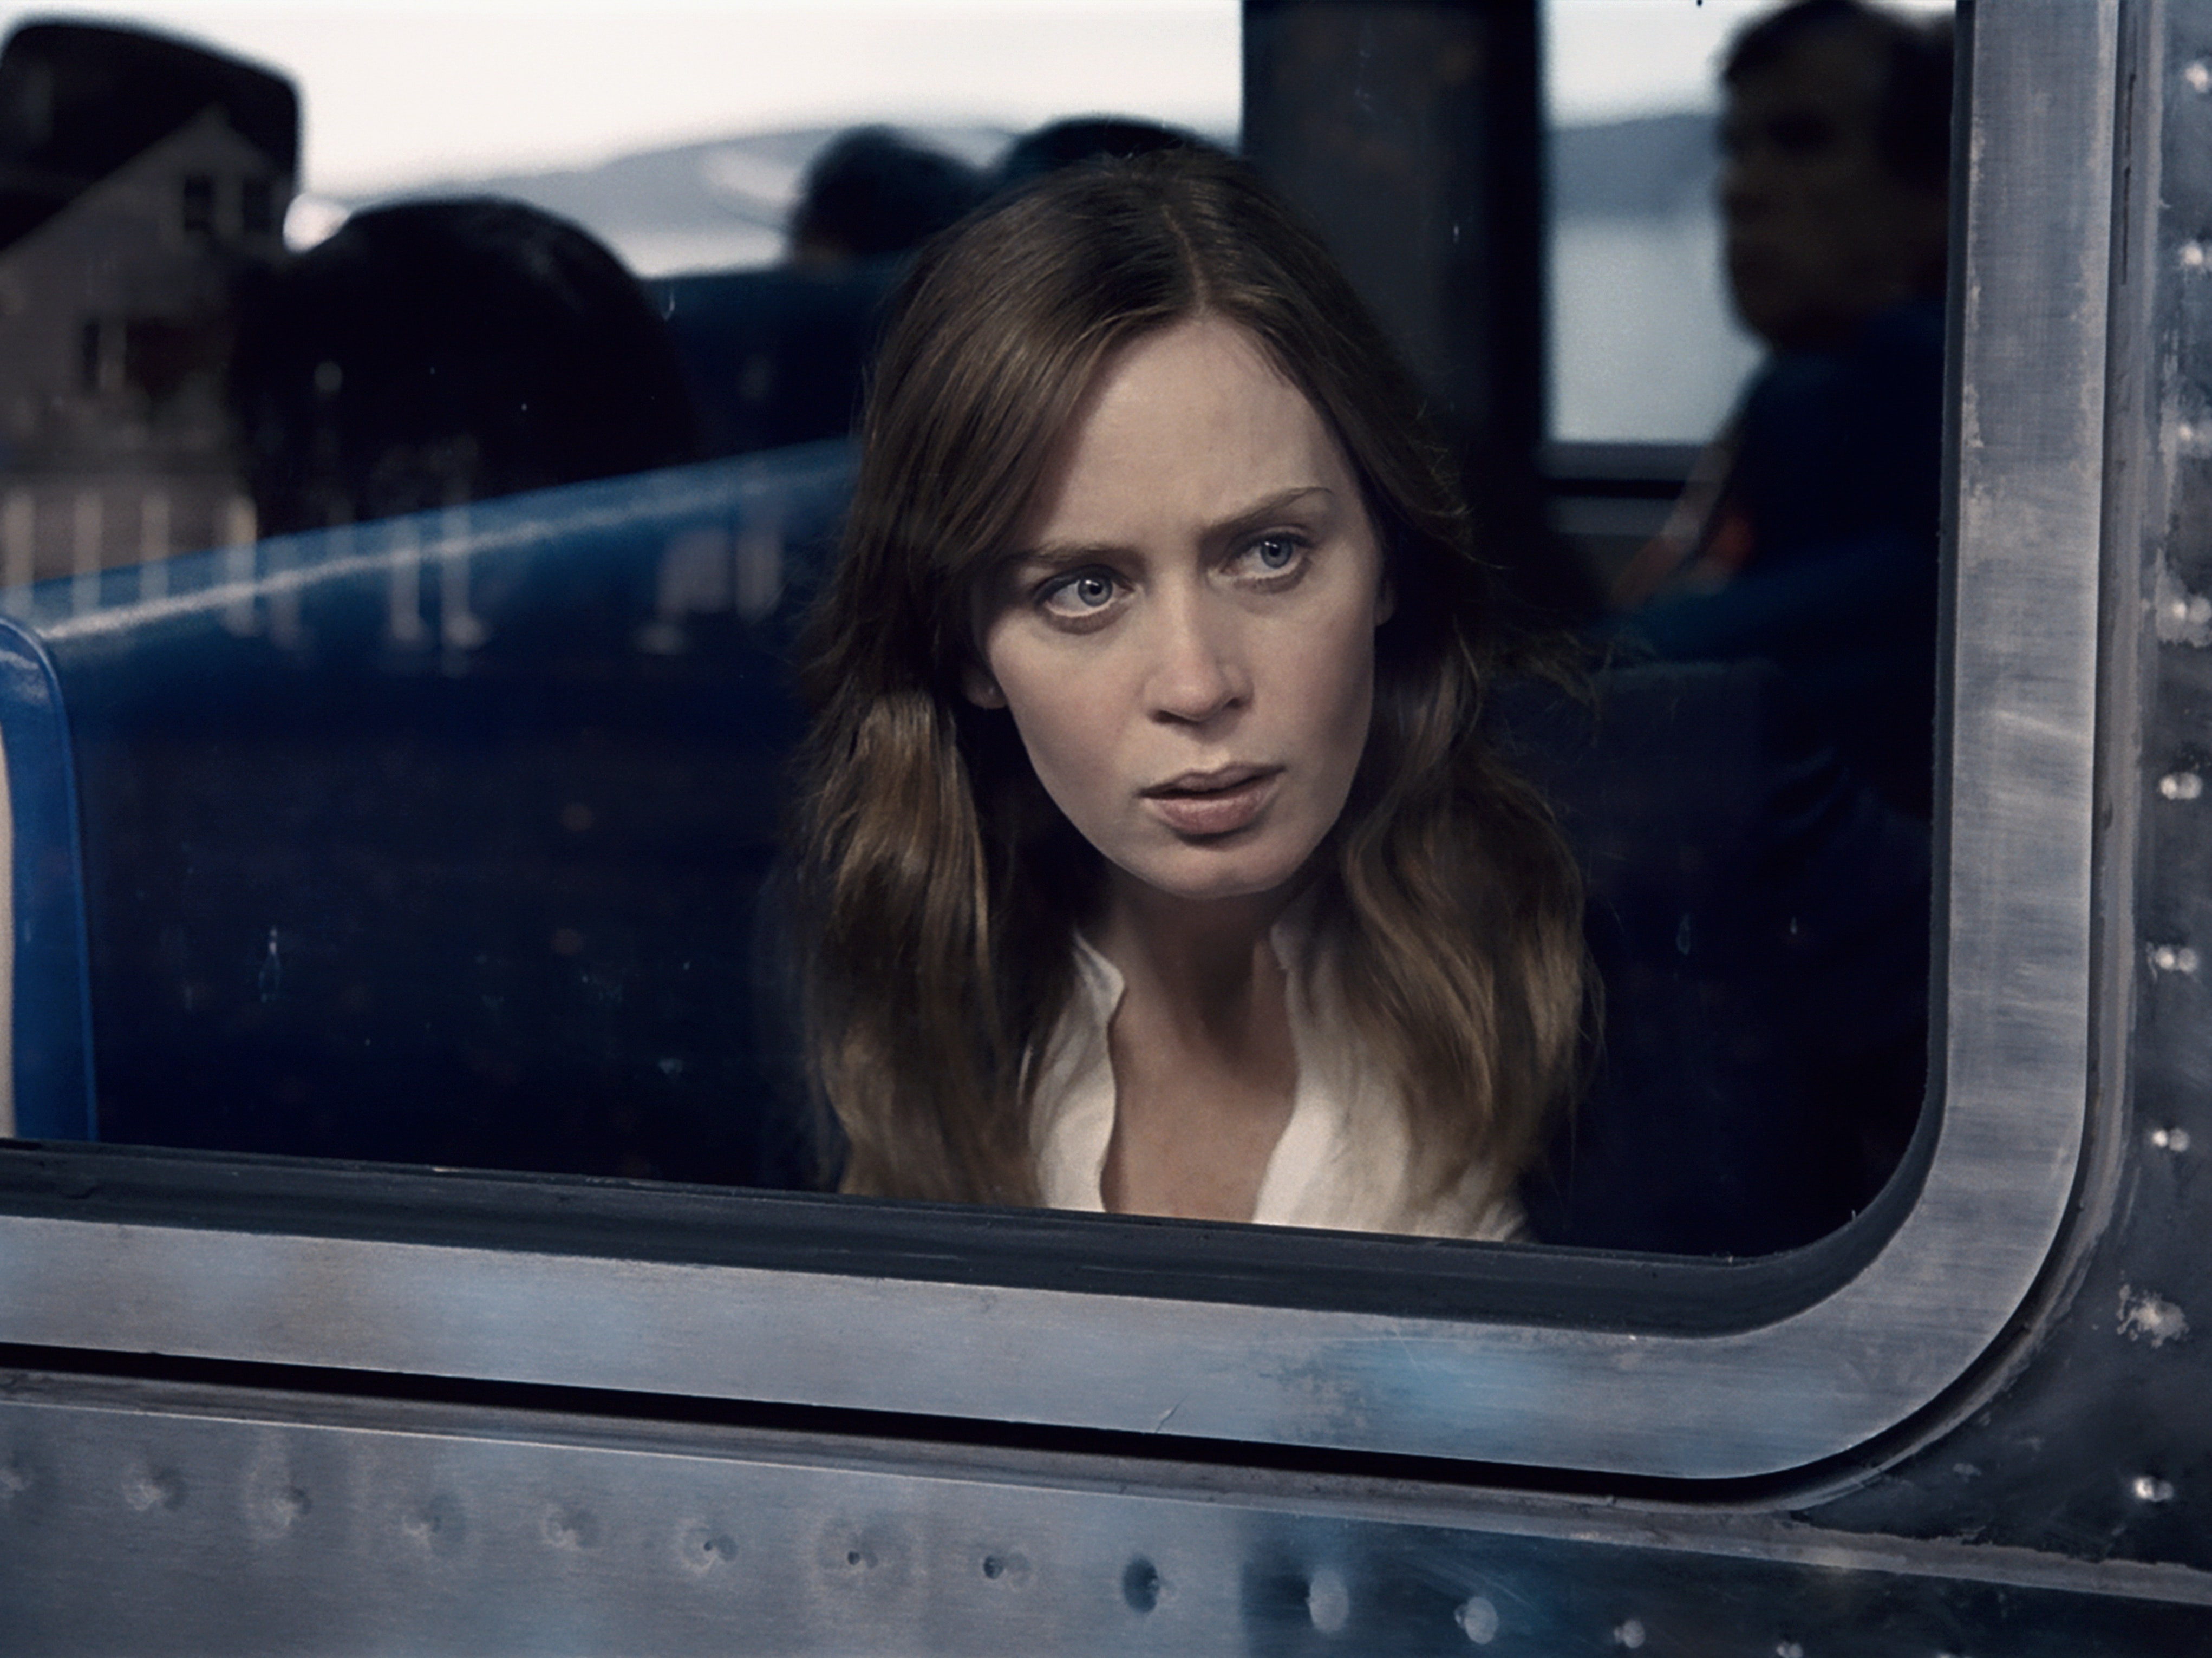 Tate Taylor and Emily Blunt's Scientific Approach to Drunkenness